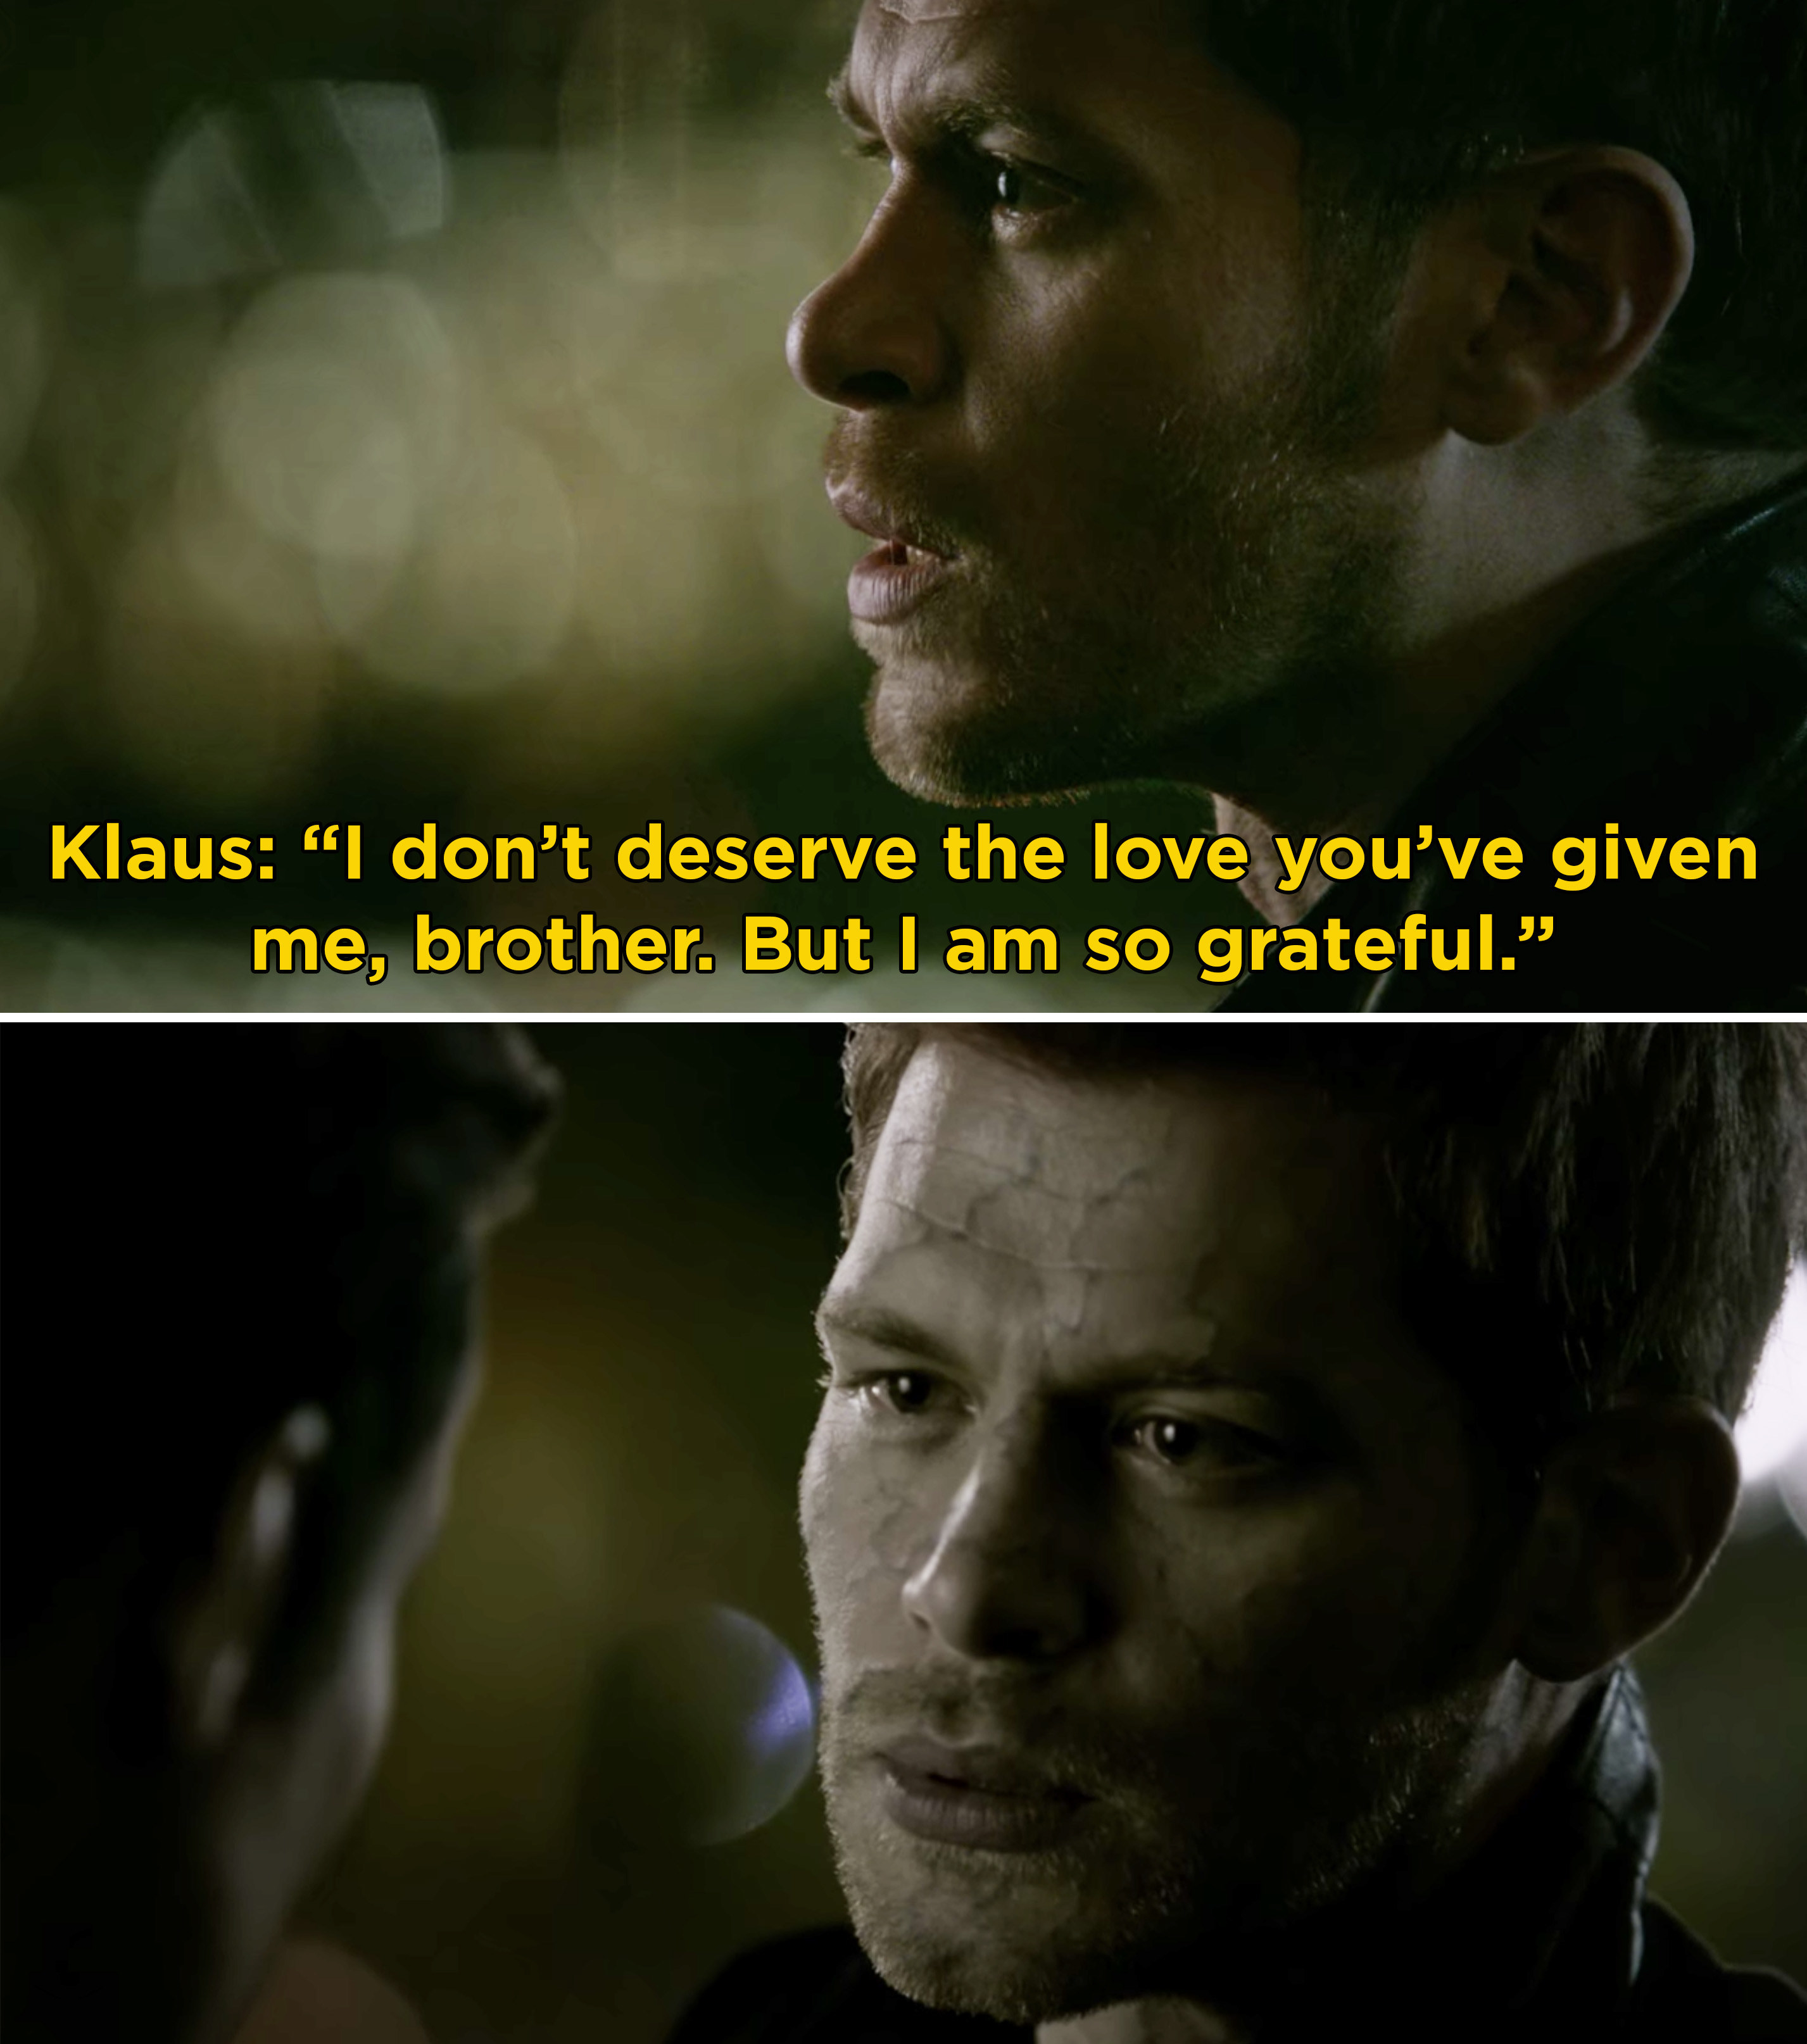 Klaus thanking Elijah for being his brother and loving him right before he dies